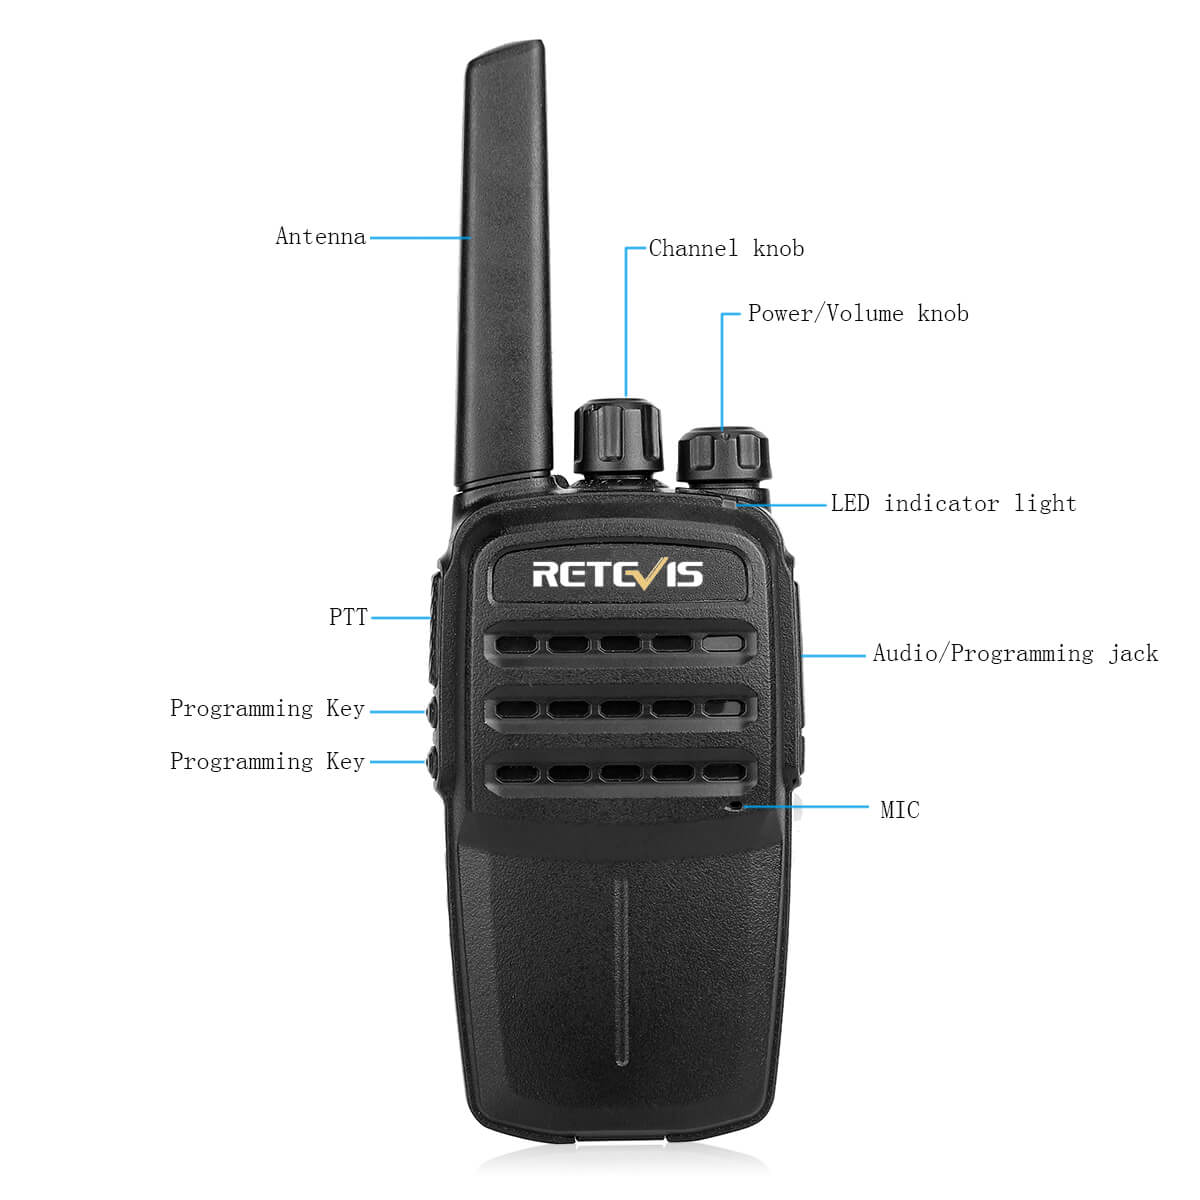 Retevis RT40 Licence-Free Digital Analog Radio is coming